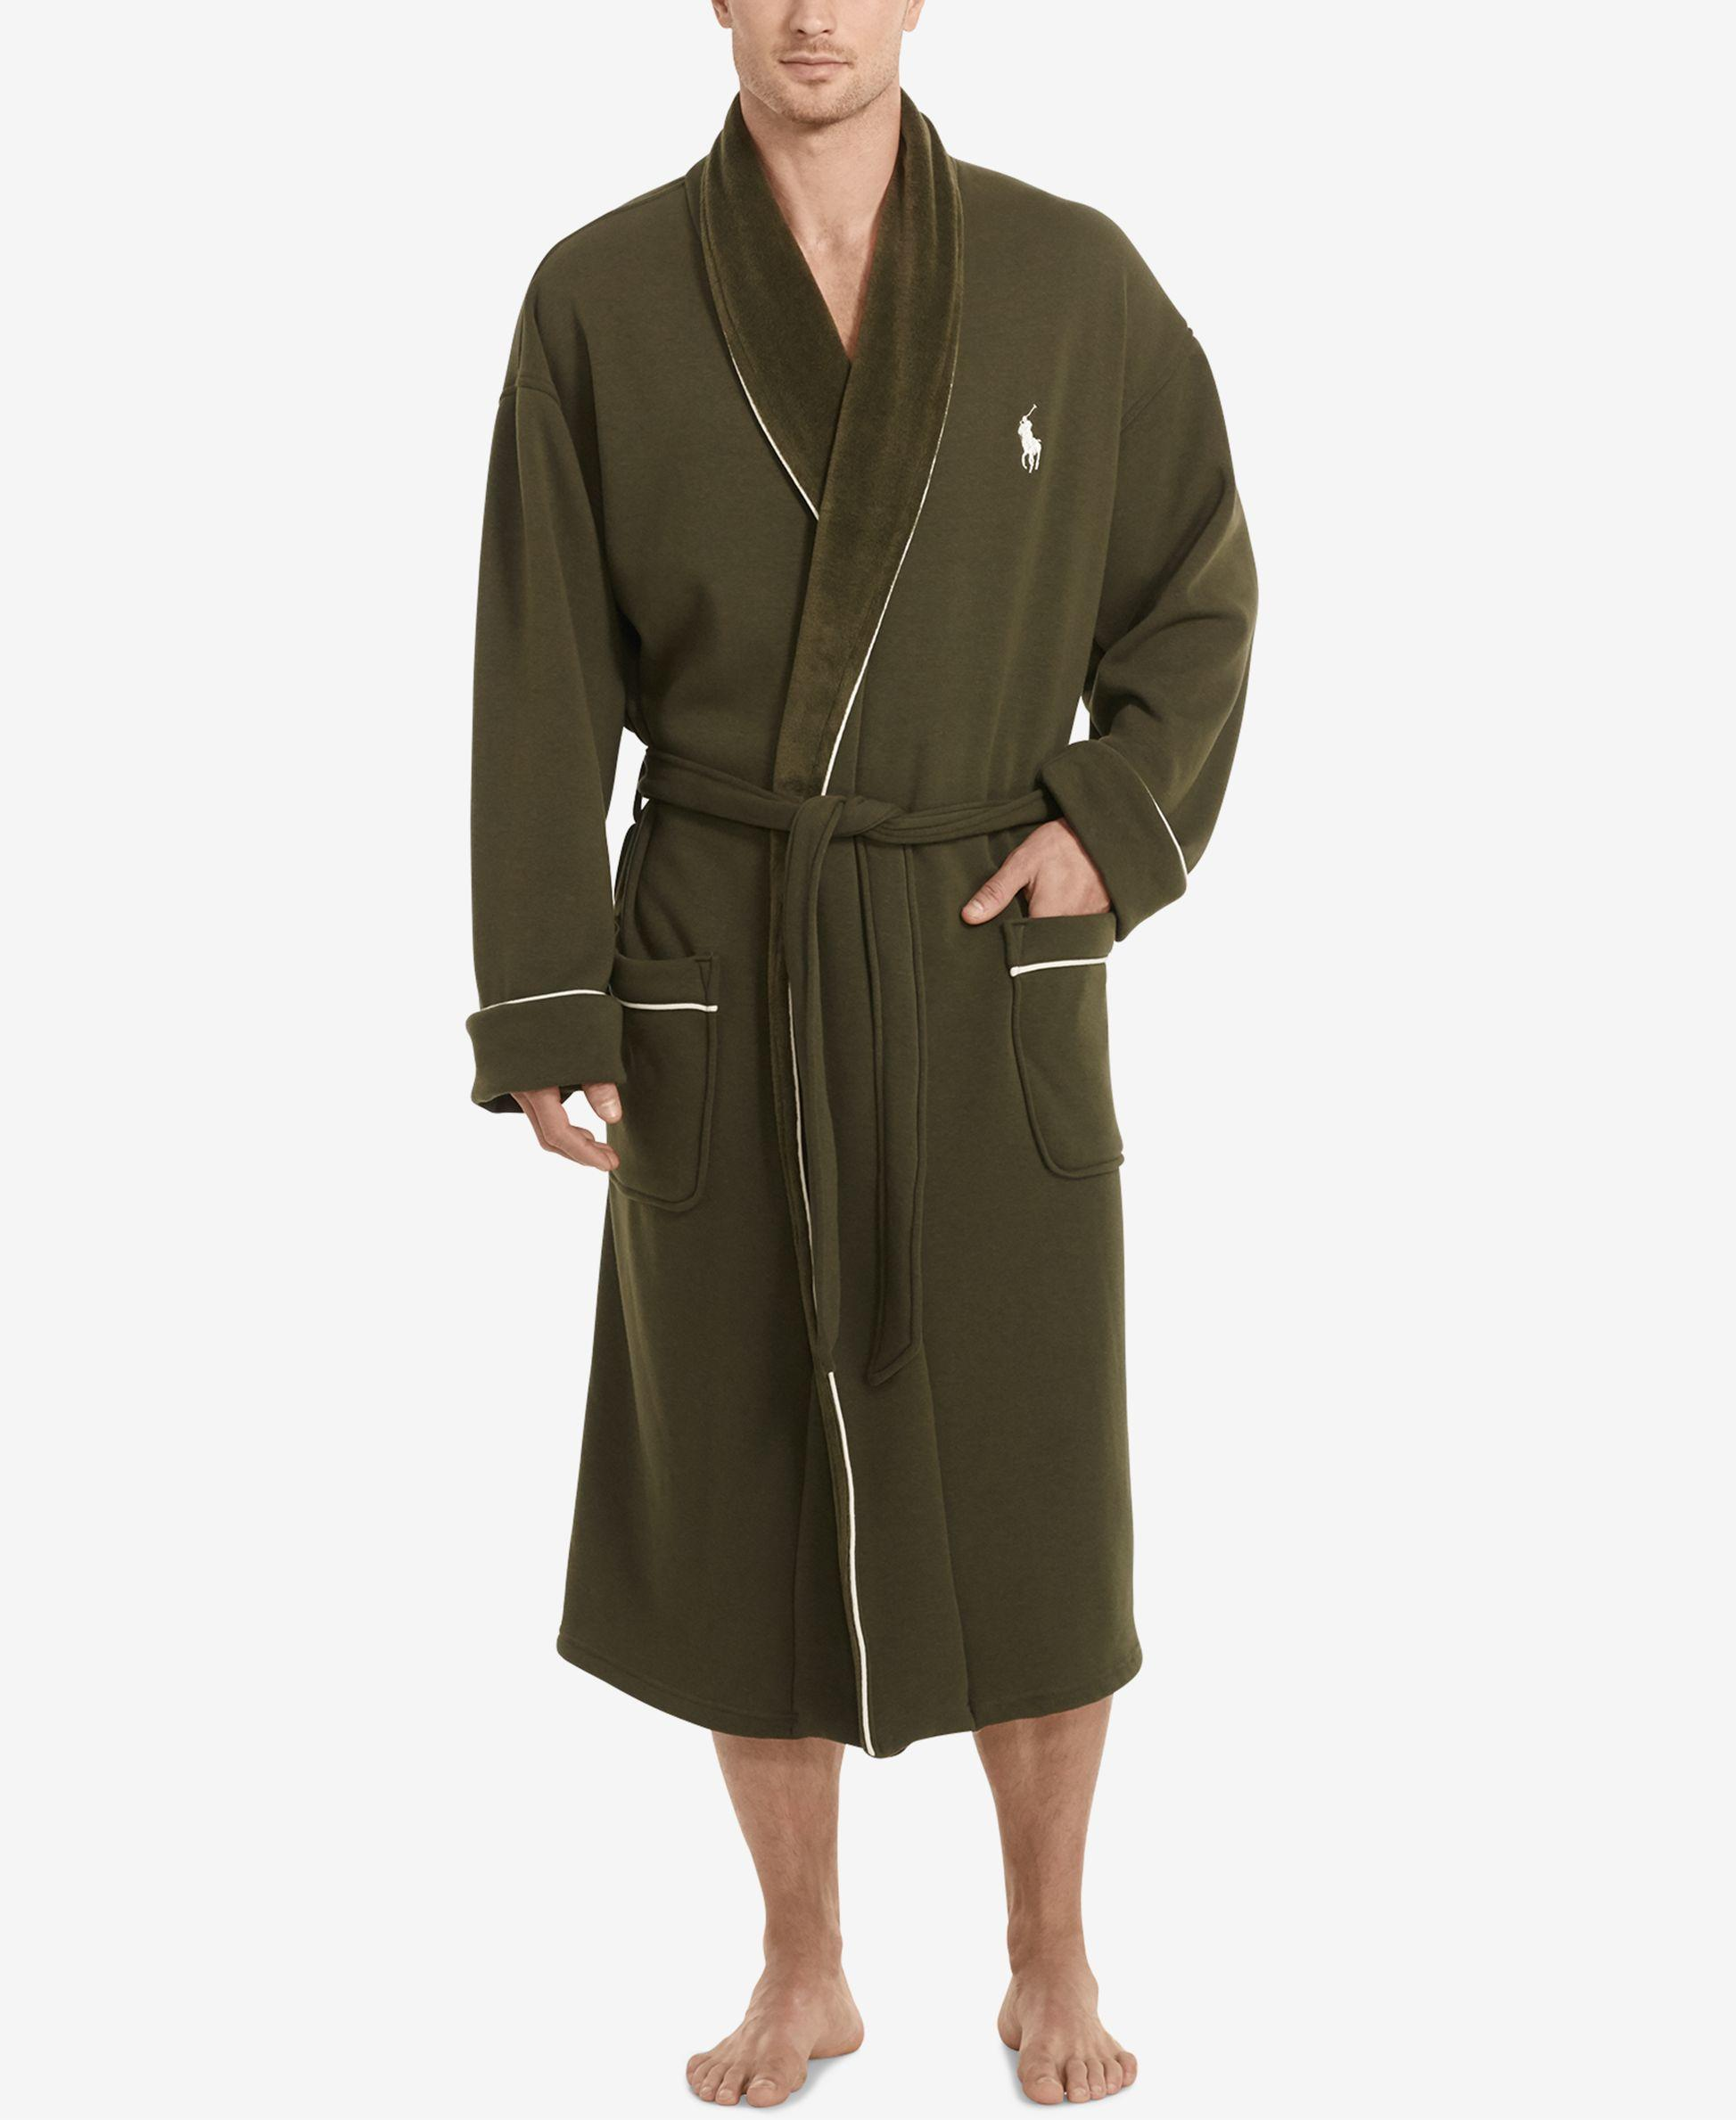 polo ralph lauren men 39 s shawl collar robe in green for men lyst. Black Bedroom Furniture Sets. Home Design Ideas